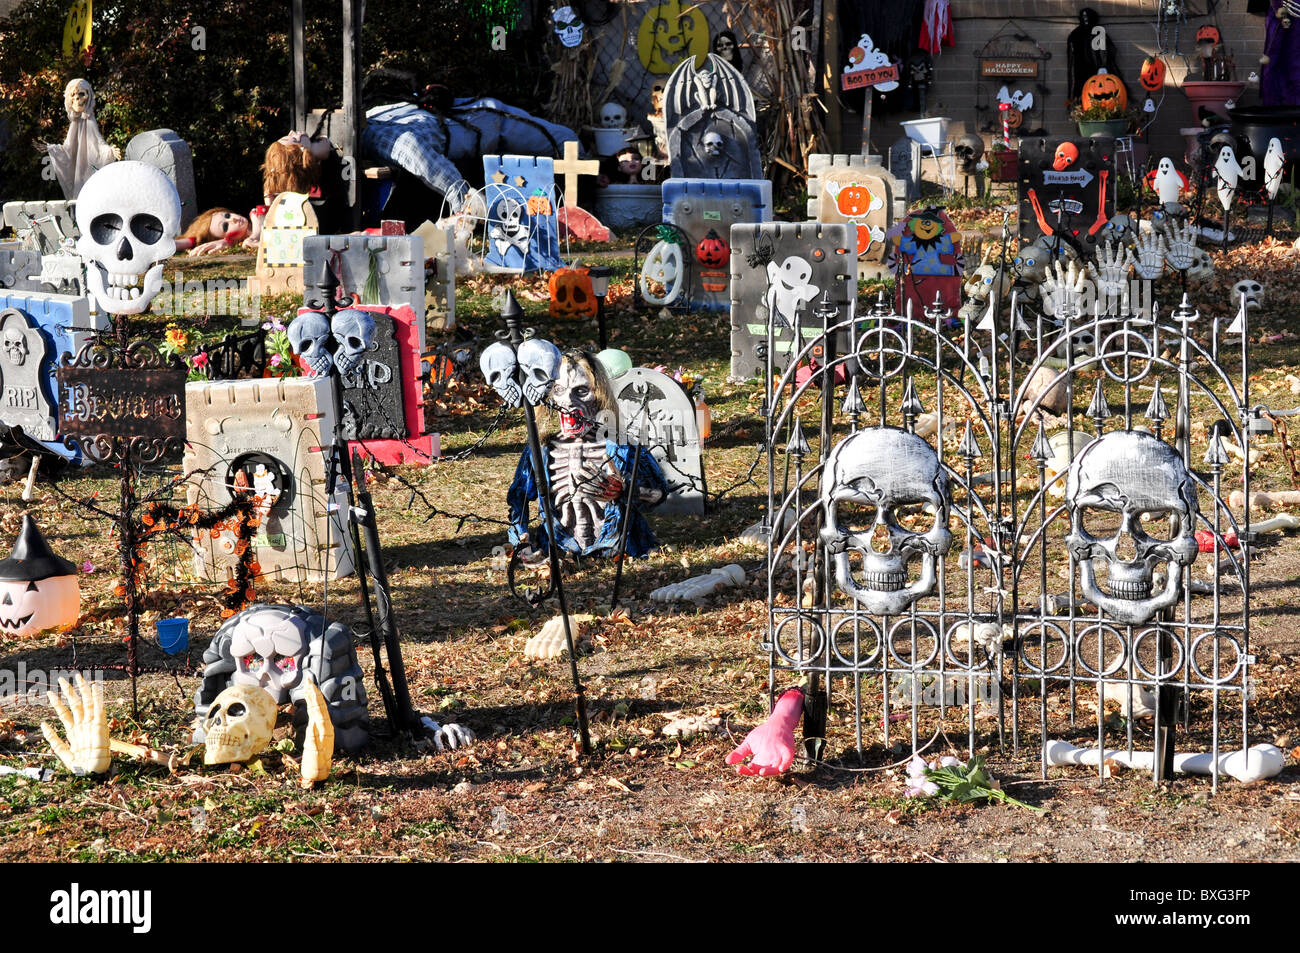 Front yard decoration for halloween stock photos front yard decoration for halloween stock - Halloween decorations toronto ...